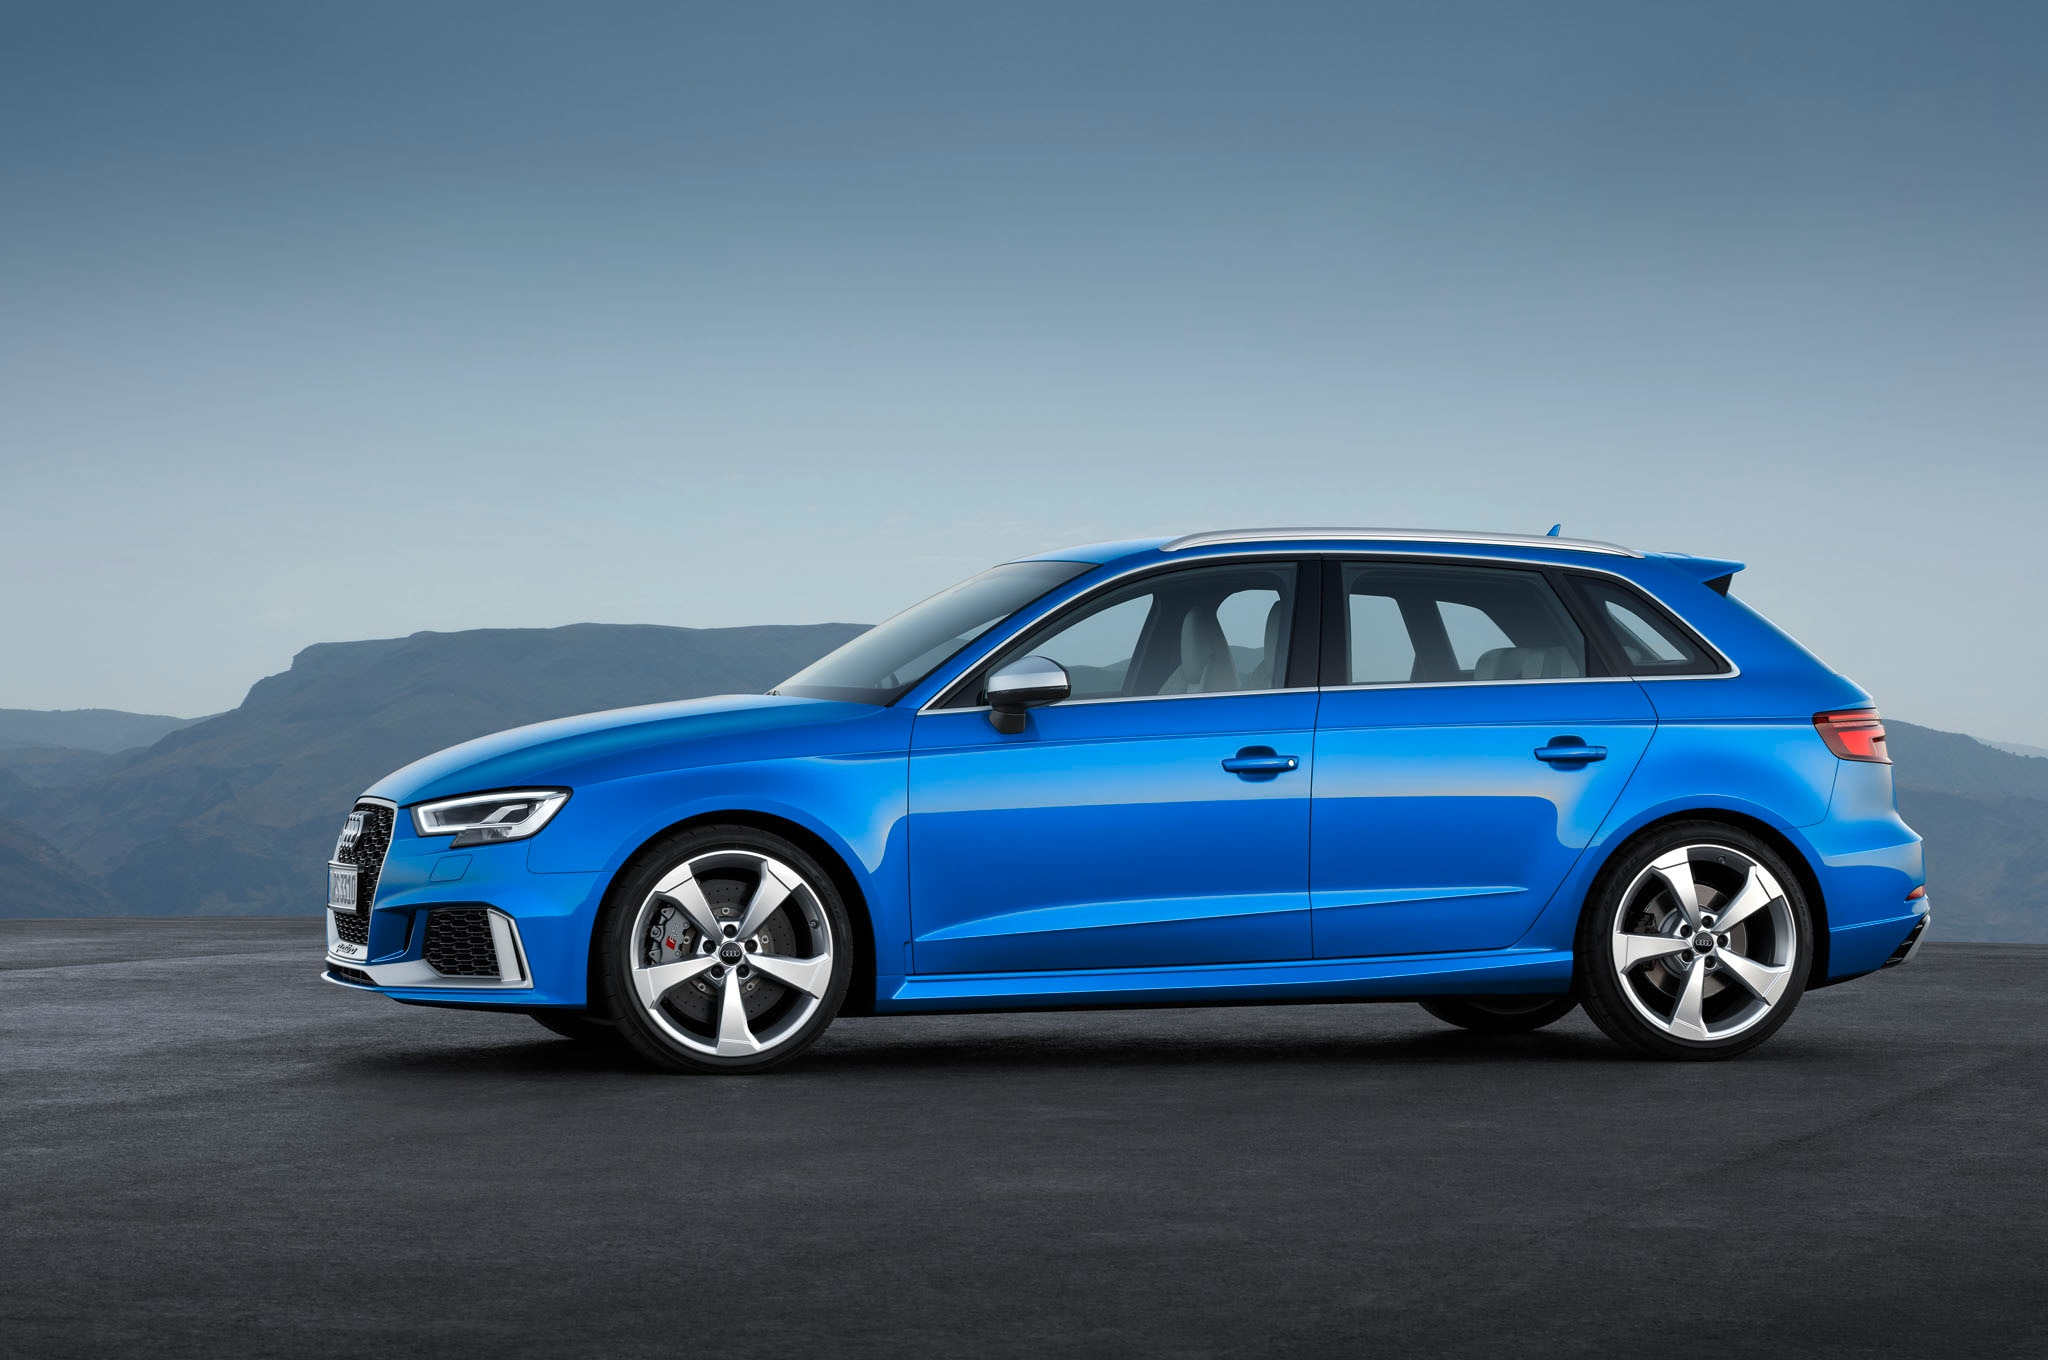 400-hp Audi RS 3 Sportback Bound for Geneva | Automobile ...